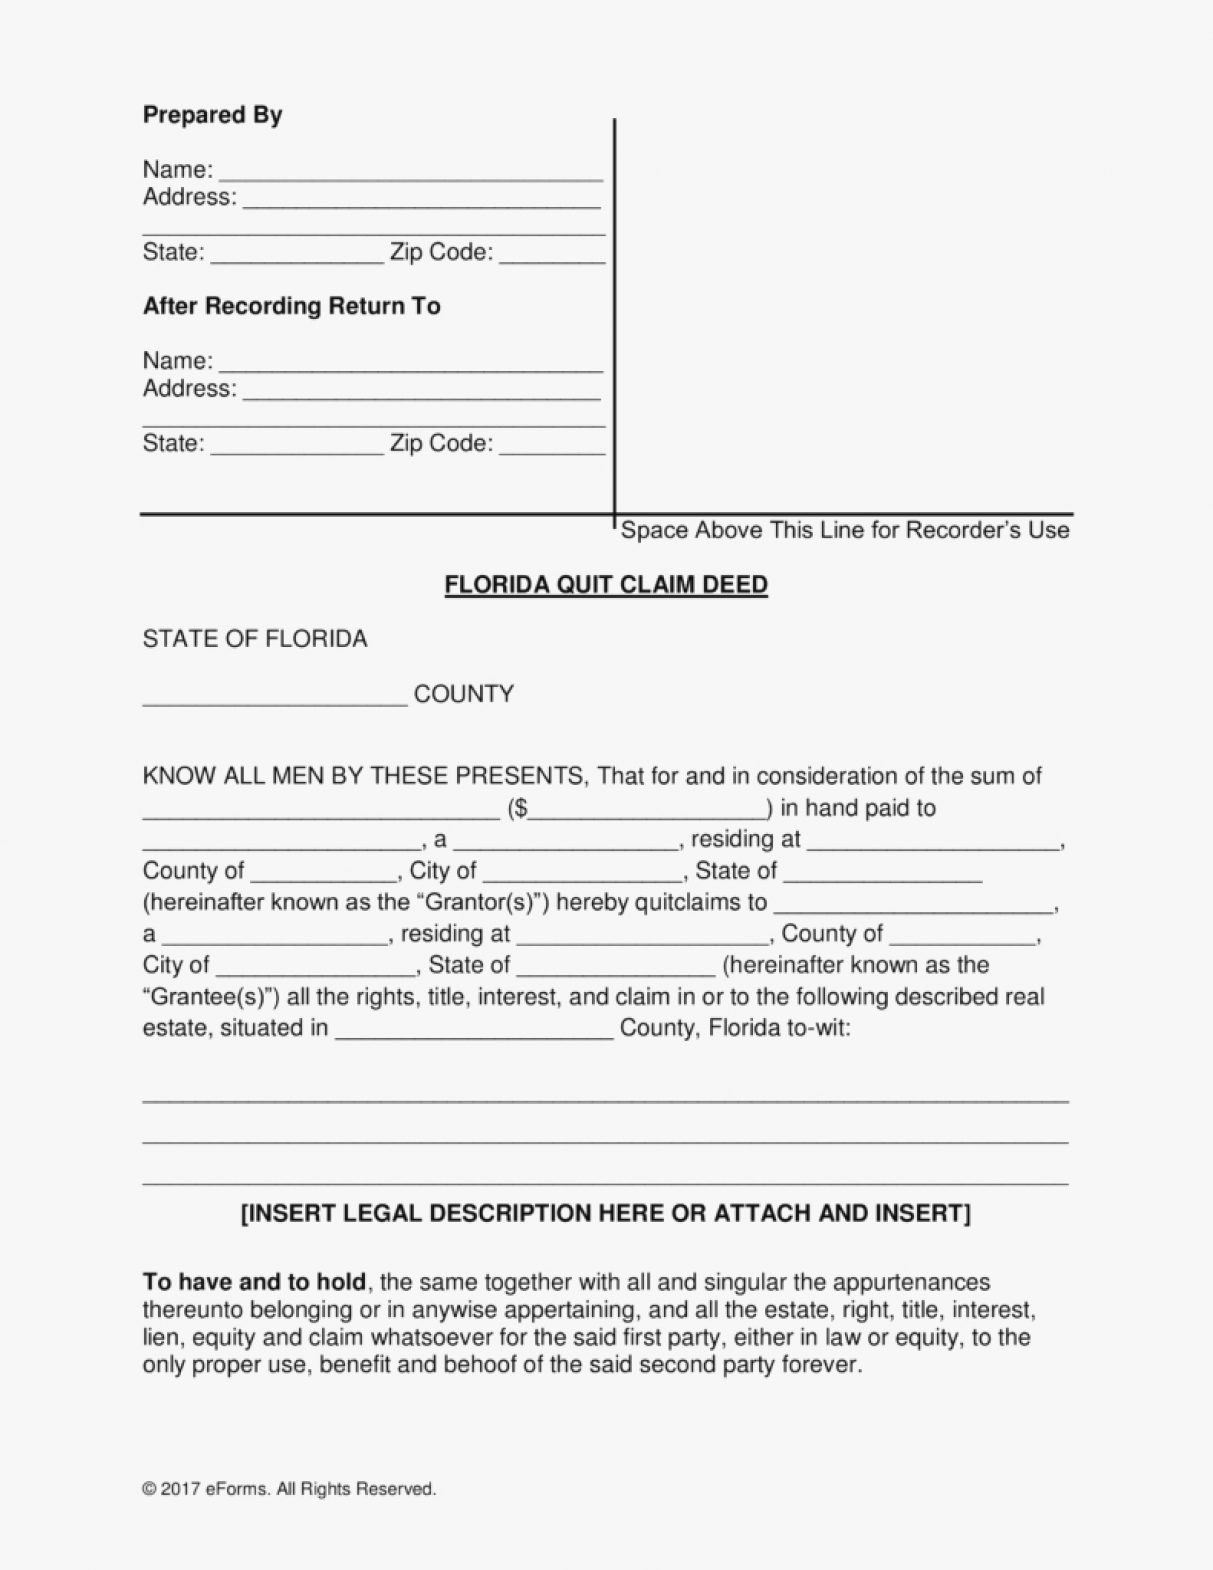 Quit Claim Deed Florida Luxury Quit Claim Deed Florida Form Template Fresh Of Release For ? Cisatl